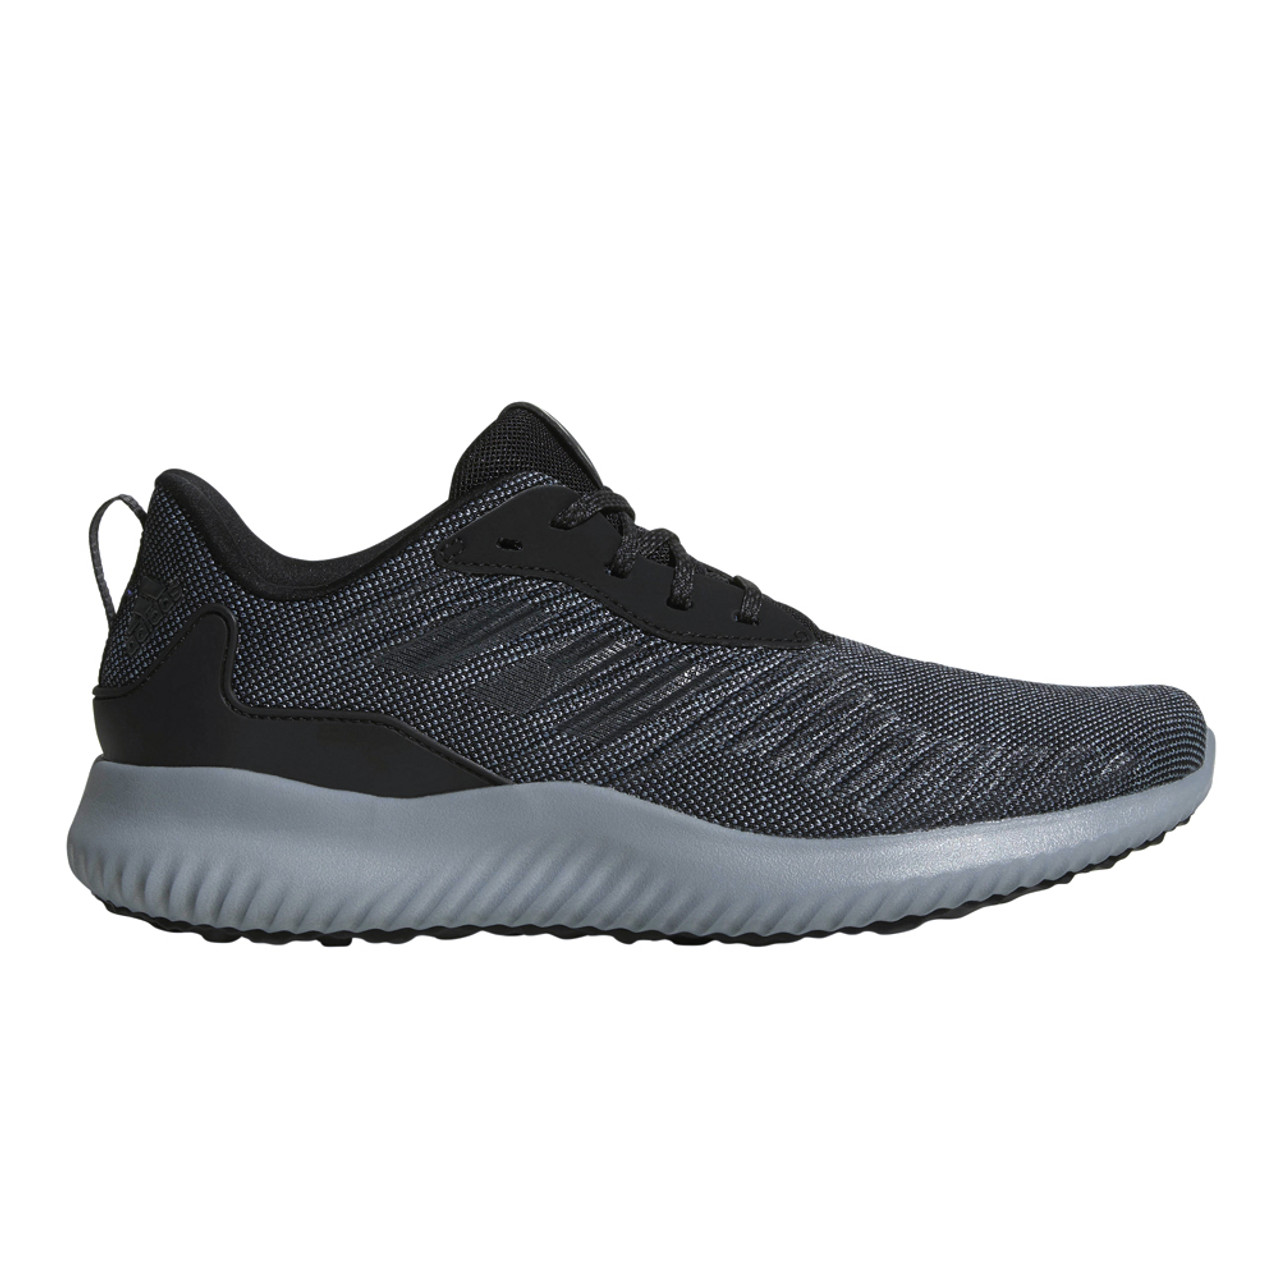 new products ca388 5592f Adidas Mens Alphabounce RC Running Shoe BlackCarbon - Shop now   Shoolu.com